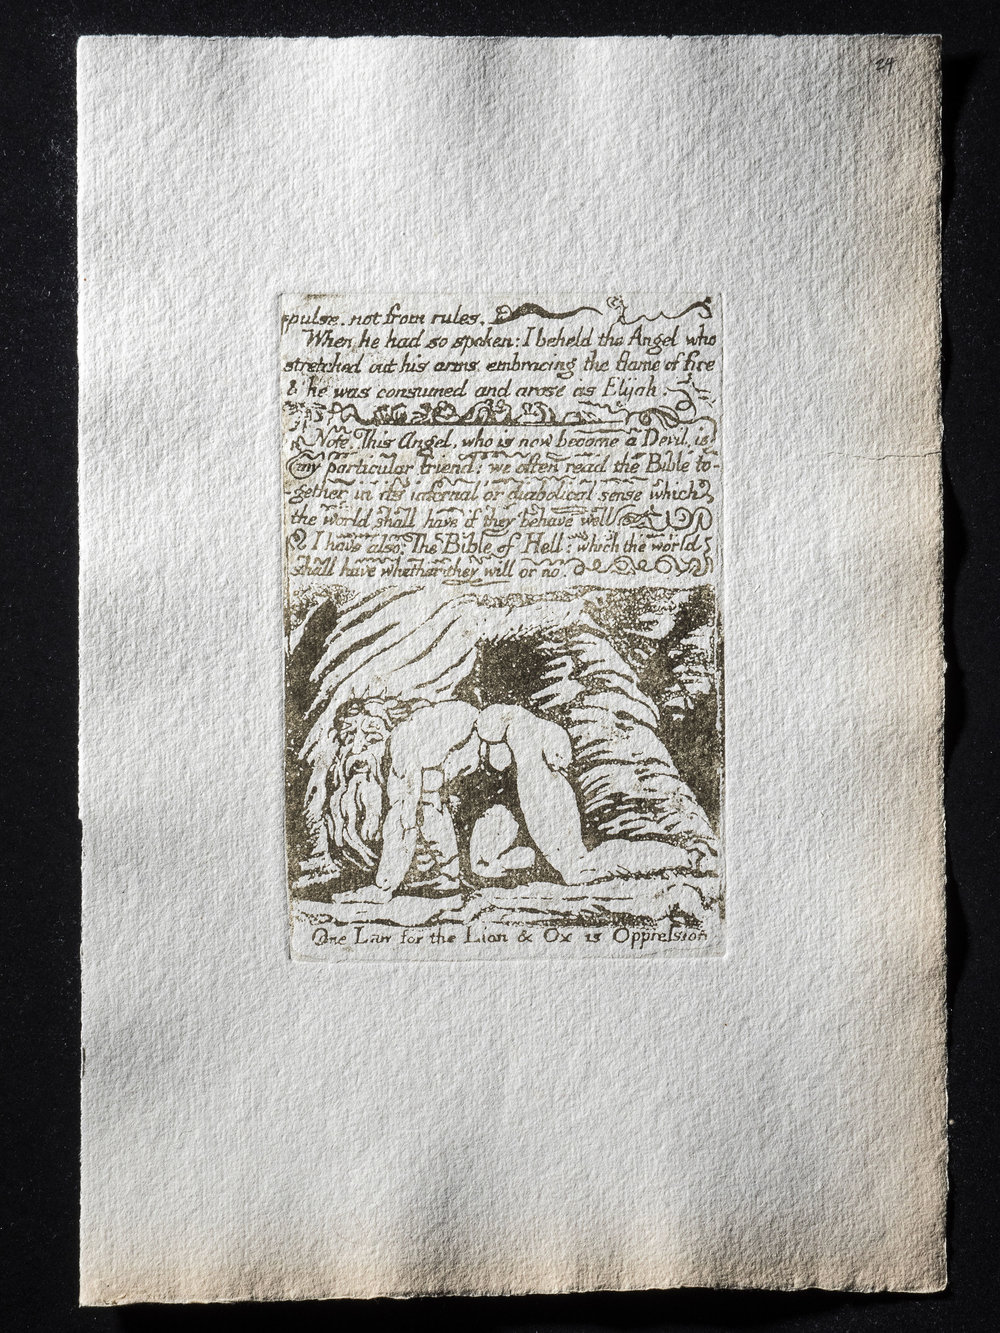 24. -pulse: not from rules. (One Law for the Lion & Ox is Oppression), 154 x 112 mm